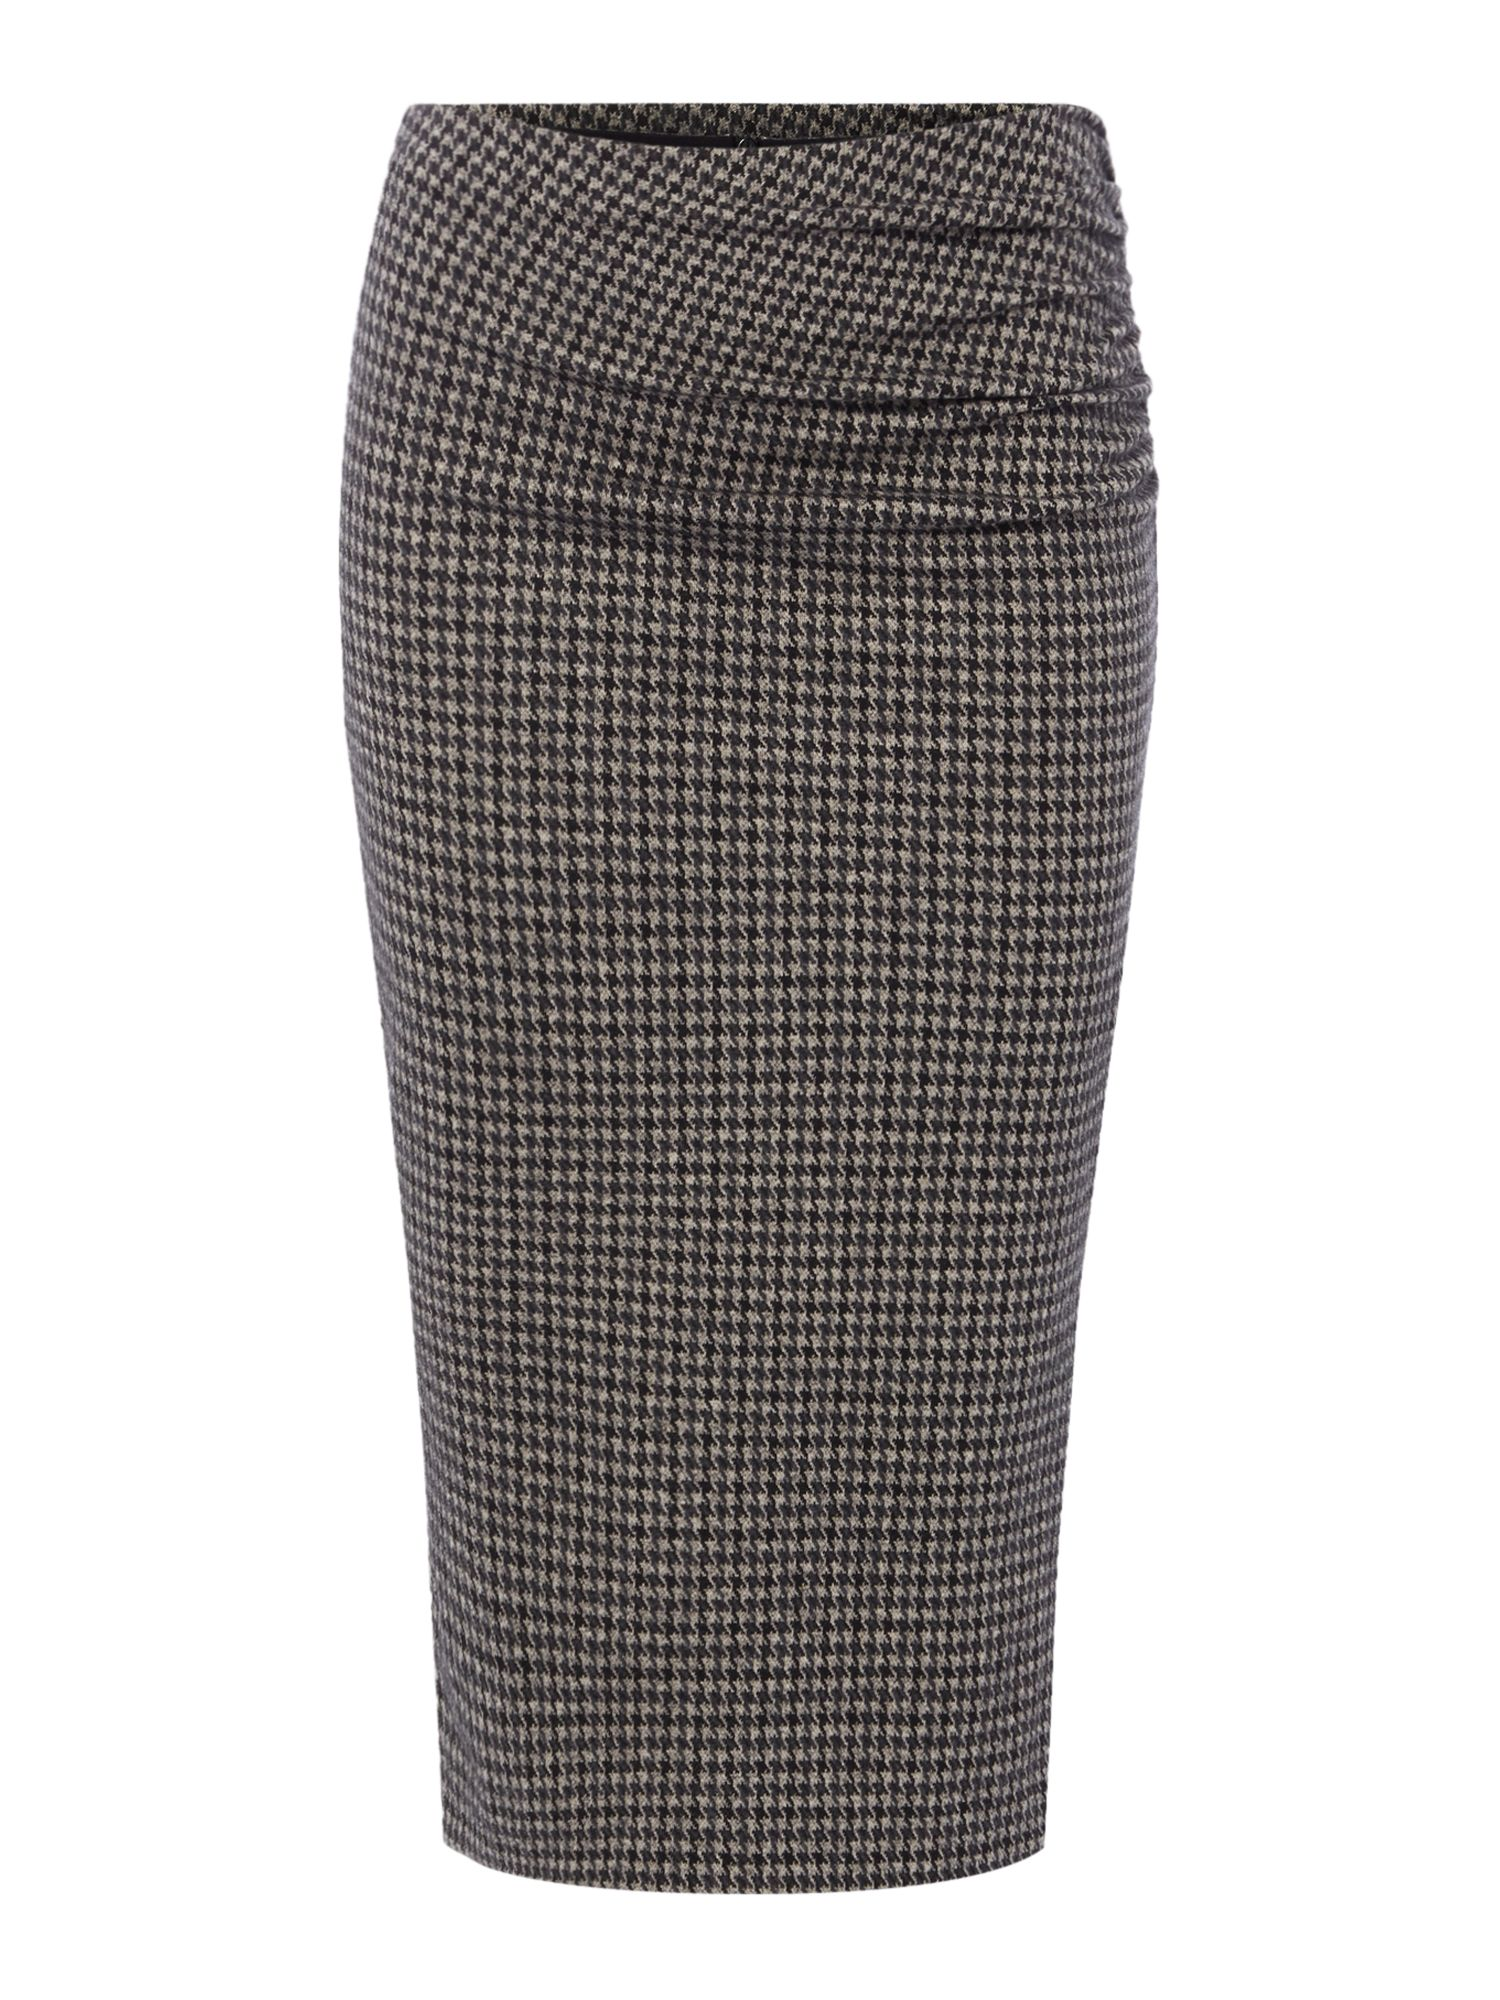 Max Mara Weekend Mogano tweed stretch skirt, Black